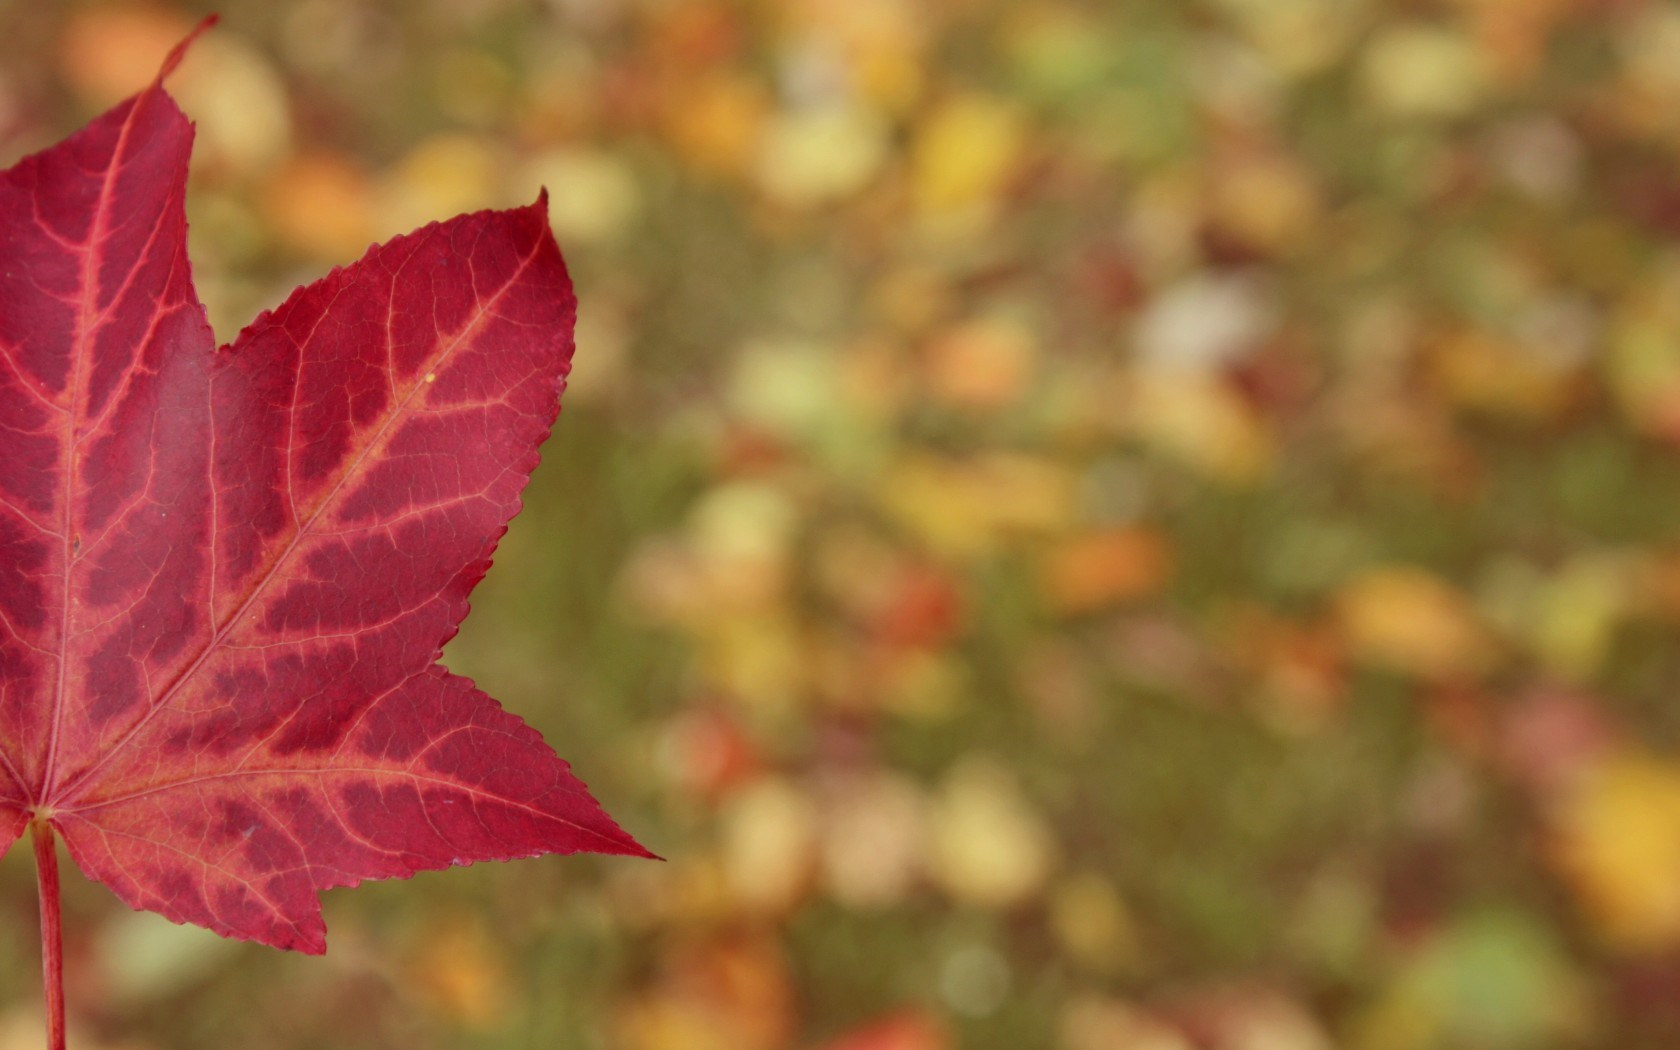 Cute Fall Computer Wallpaper Red Leaf Wallpaper High Definition High Quality